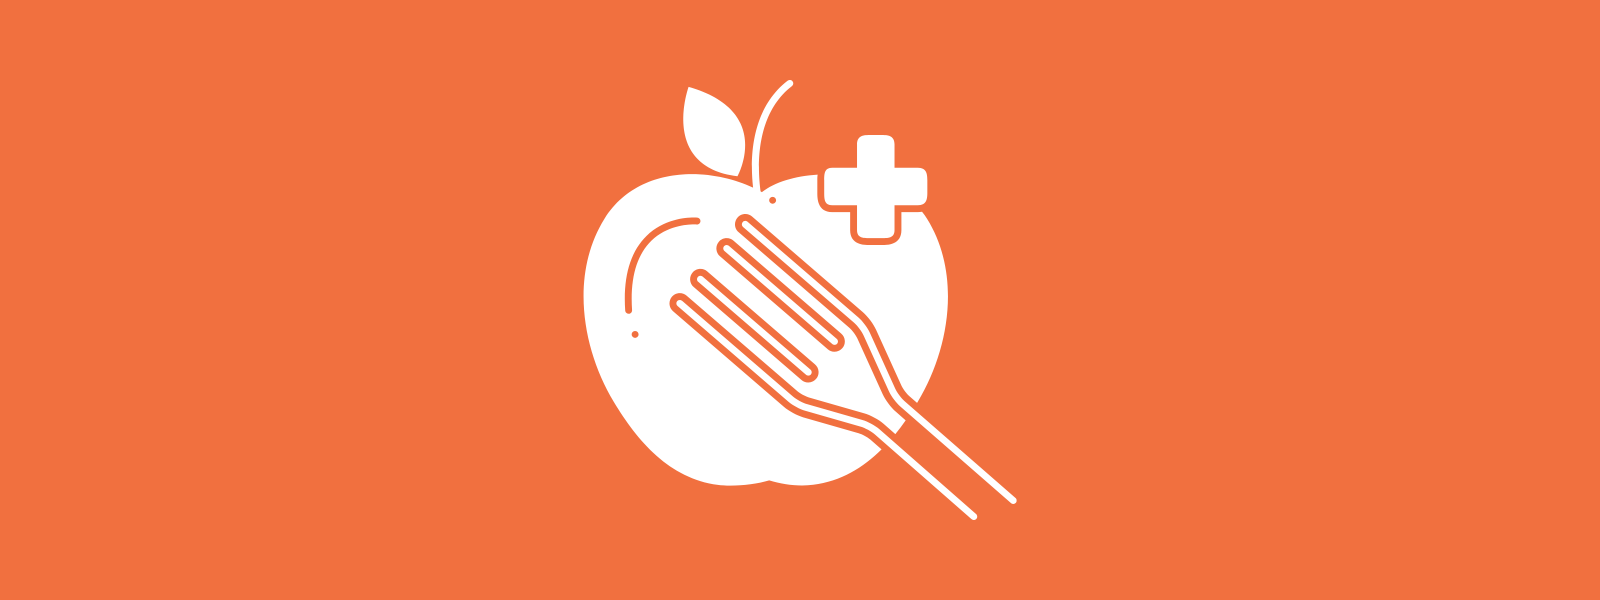 Icon background of eating healthy